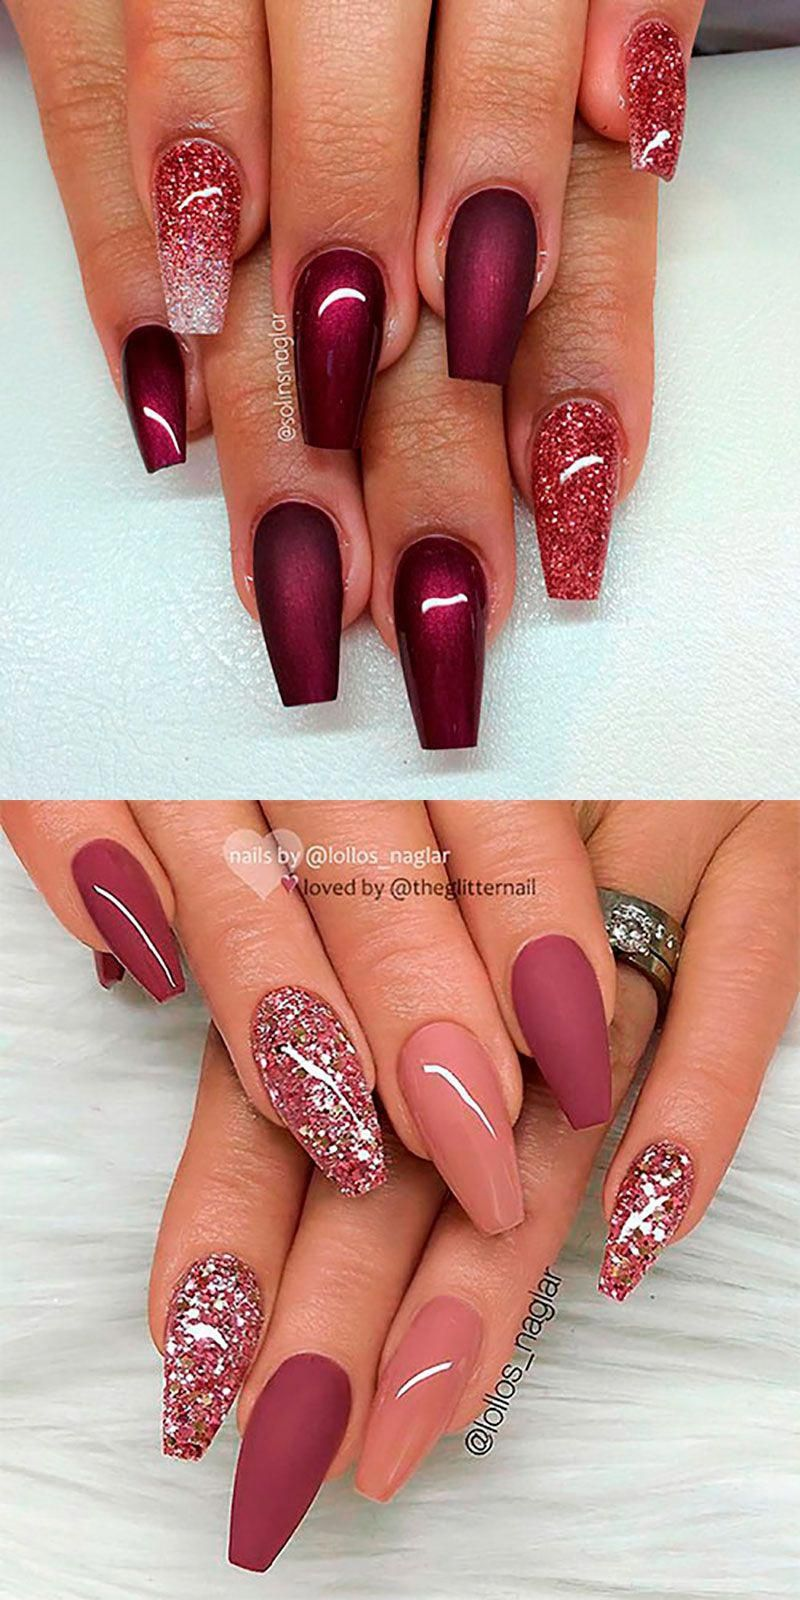 The Best Coffin Nails Ideas That Suit Everyone Fialove Nehty Gelove Nehty Dlouhe Nehty